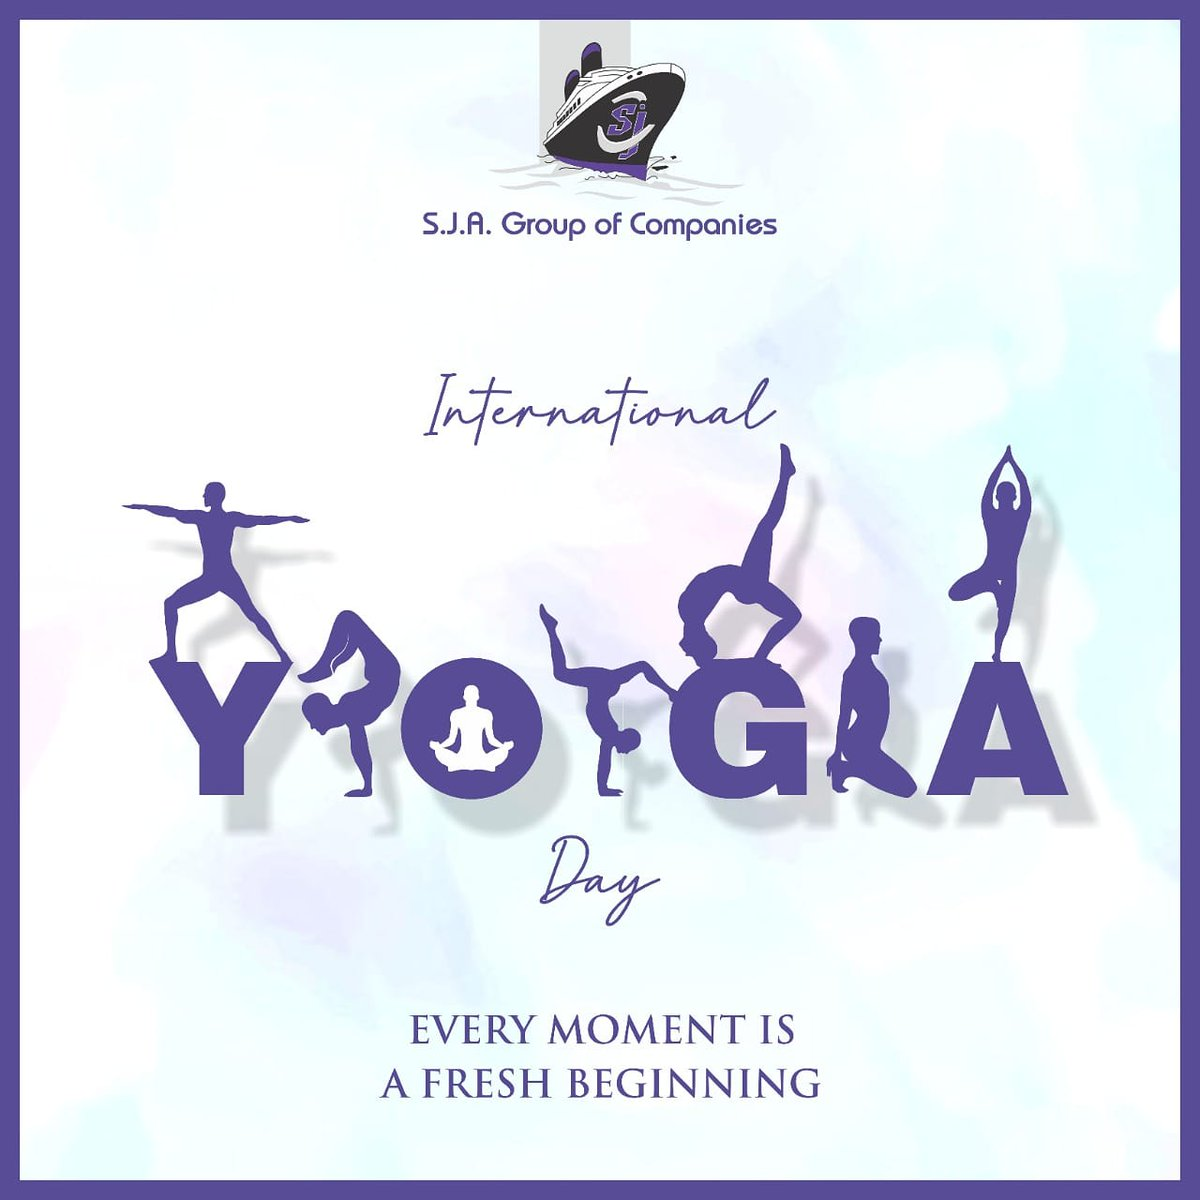 Sja Group Of Companies On Twitter Yoga Is A Bridge To Connect Mind And Body Spiritually Happyinternationalyogaday Sjagroup Internationalyogaday Yogaday Yoga Logistics India Internationalyogaday2020 Https T Co 1z2pl5dsnz